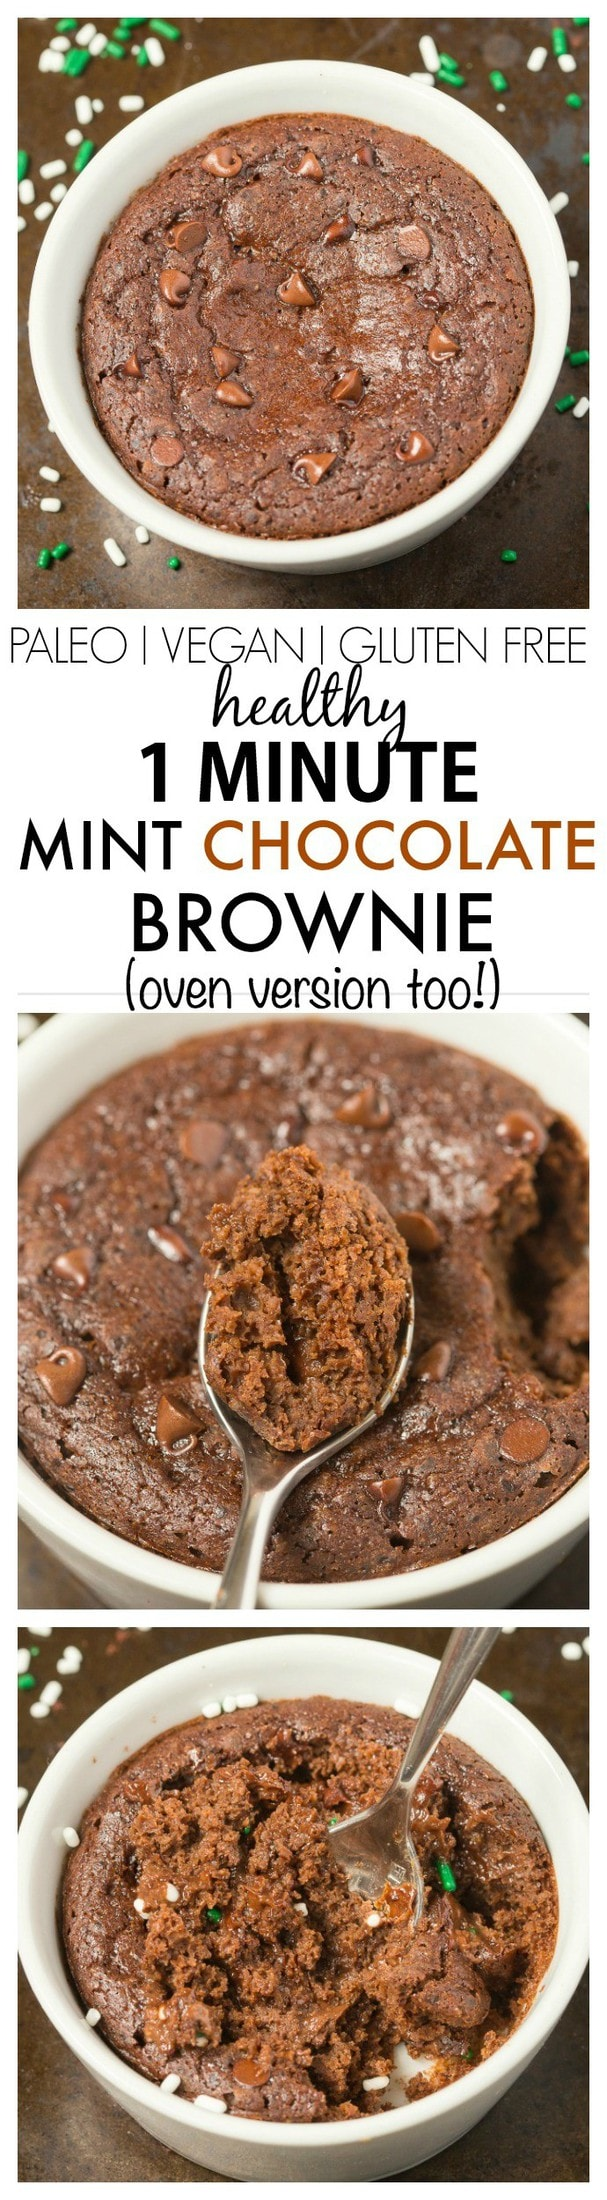 Healthy 1 Minute Chocolate Brownie with an optional hint of mint- SO moist, fudgy and loaded with chocolate flavor but with NO butter, oil, sugar or white flour- Oven option too! {vegan, gluten free, paleo recipe}- thebigmansworld.com